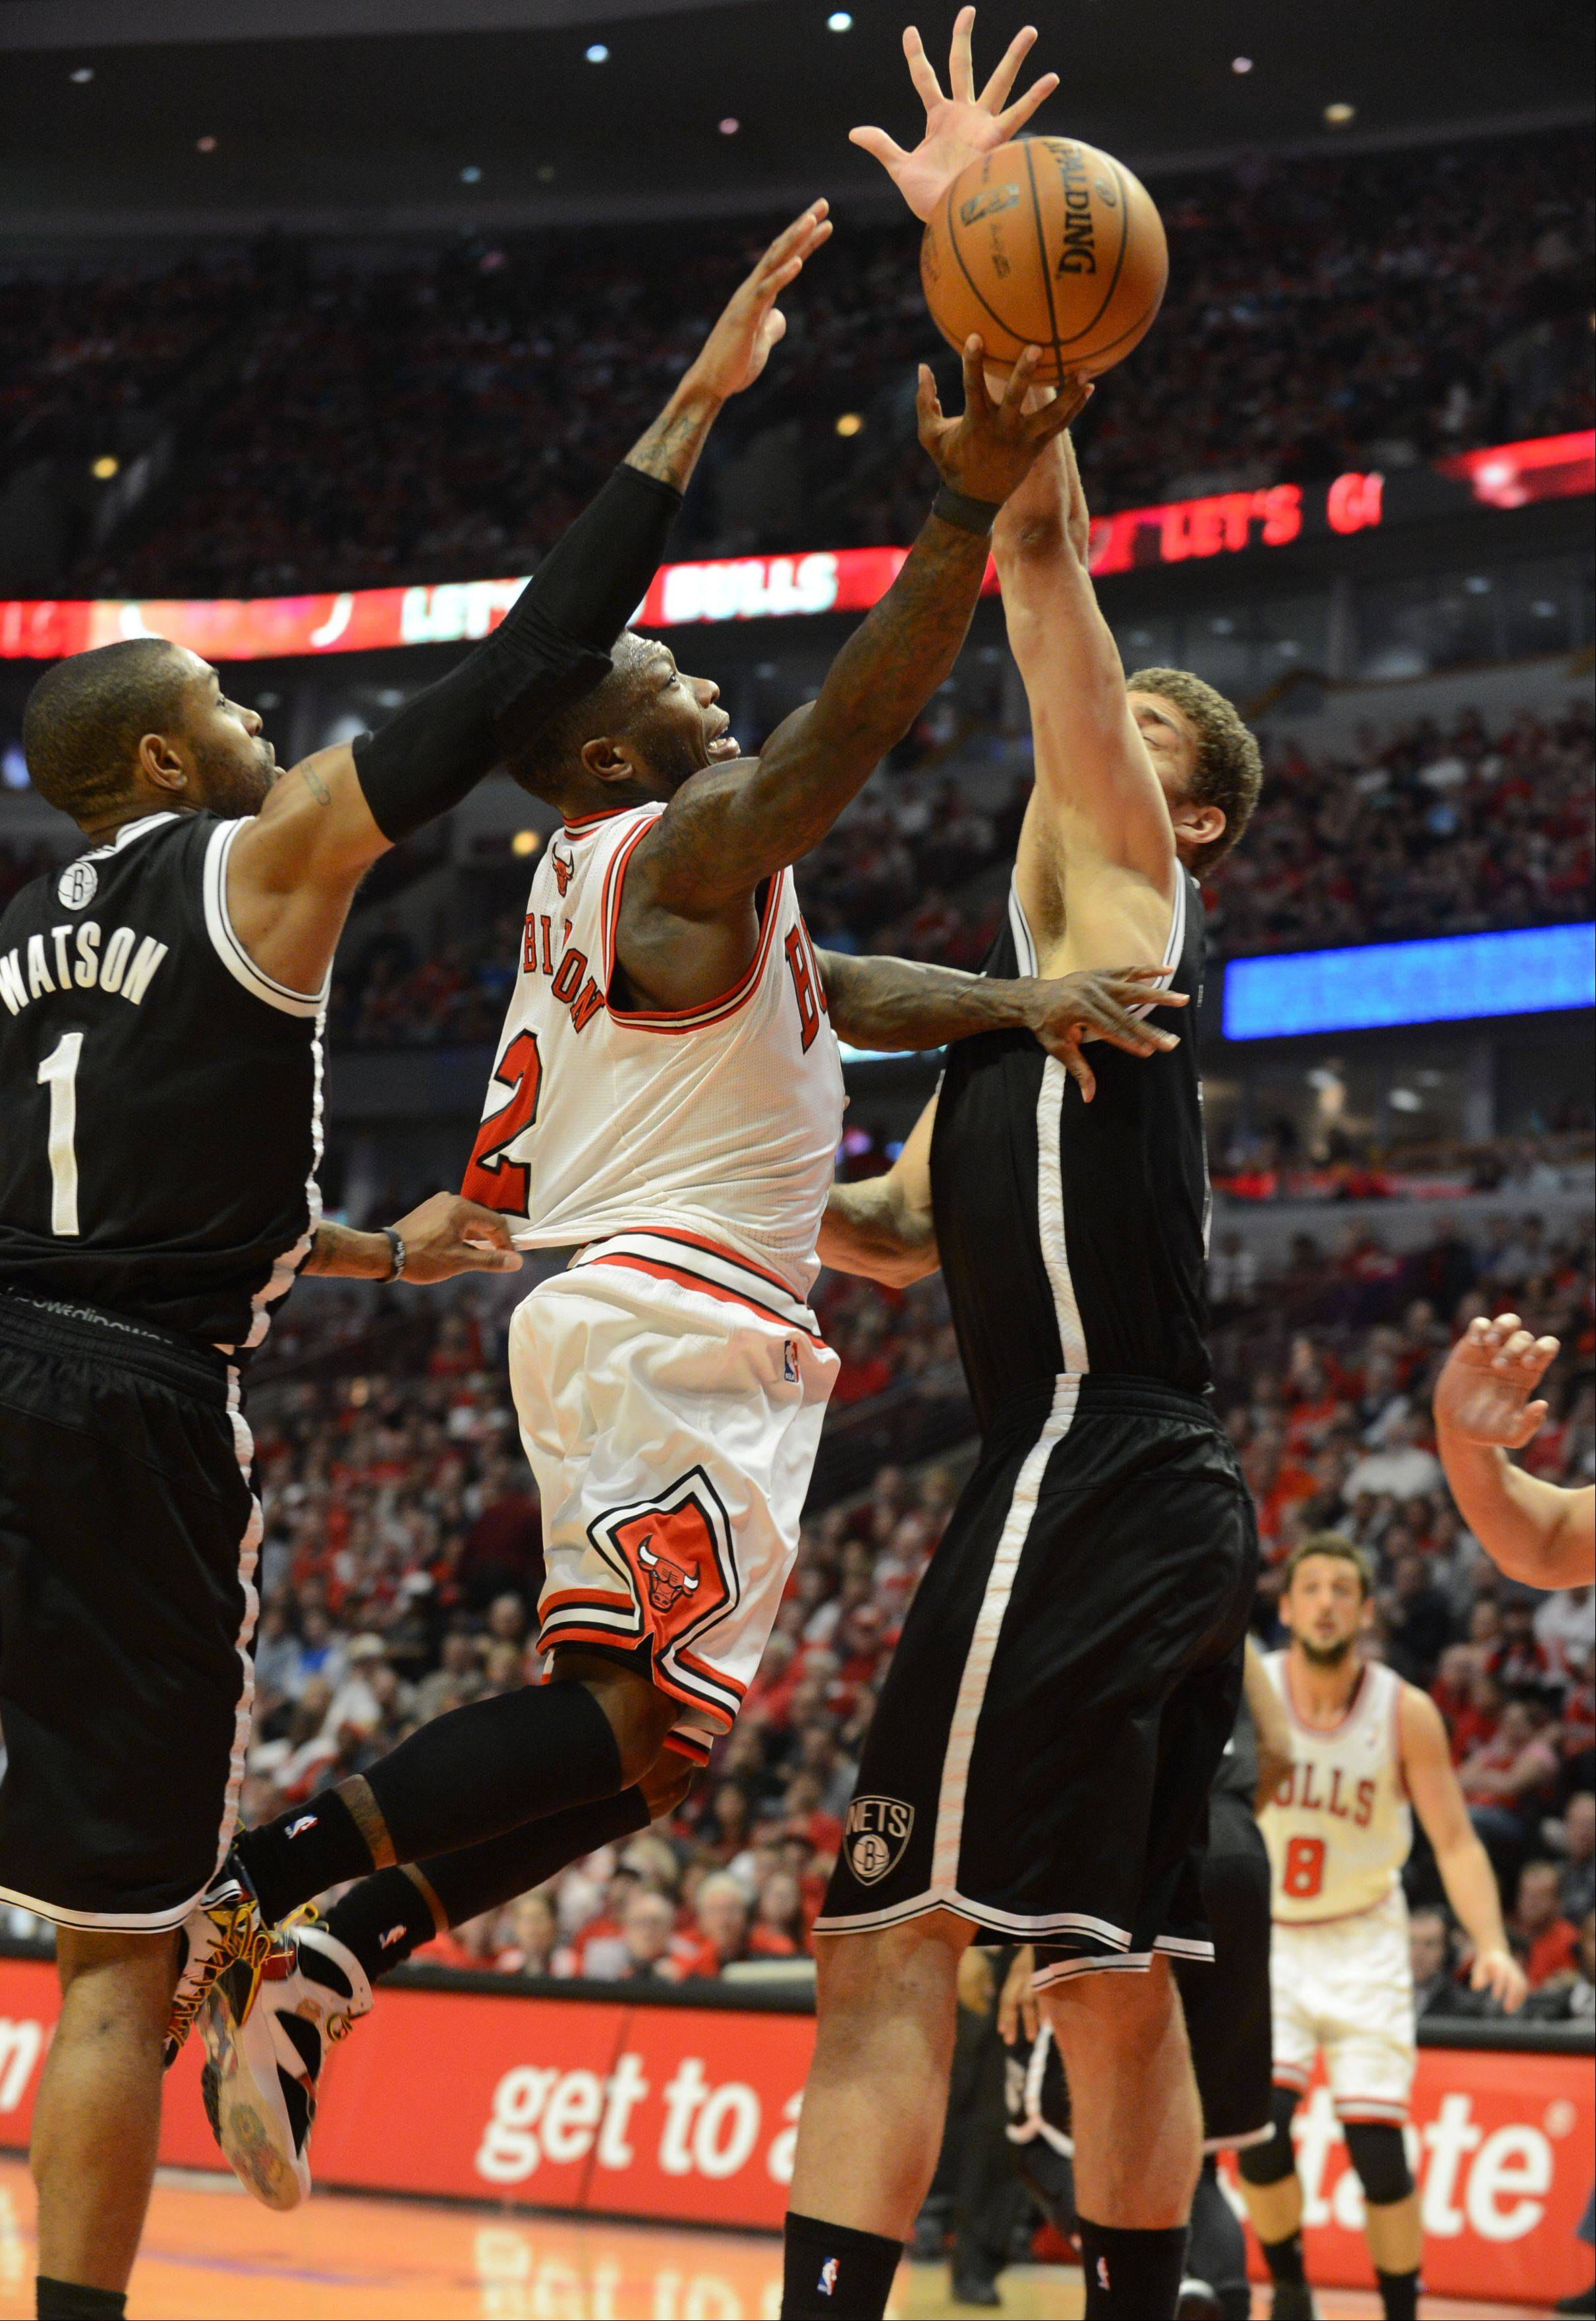 Nate Robinson goes for the basket between Brooklyn's C.J. Watson, left, and Brook Lopez, right, Saturday during Game 4 of the first-round playoff game against the Brooklyn Nets at the United Center. The Bulls won 142-134 in triple overtime.